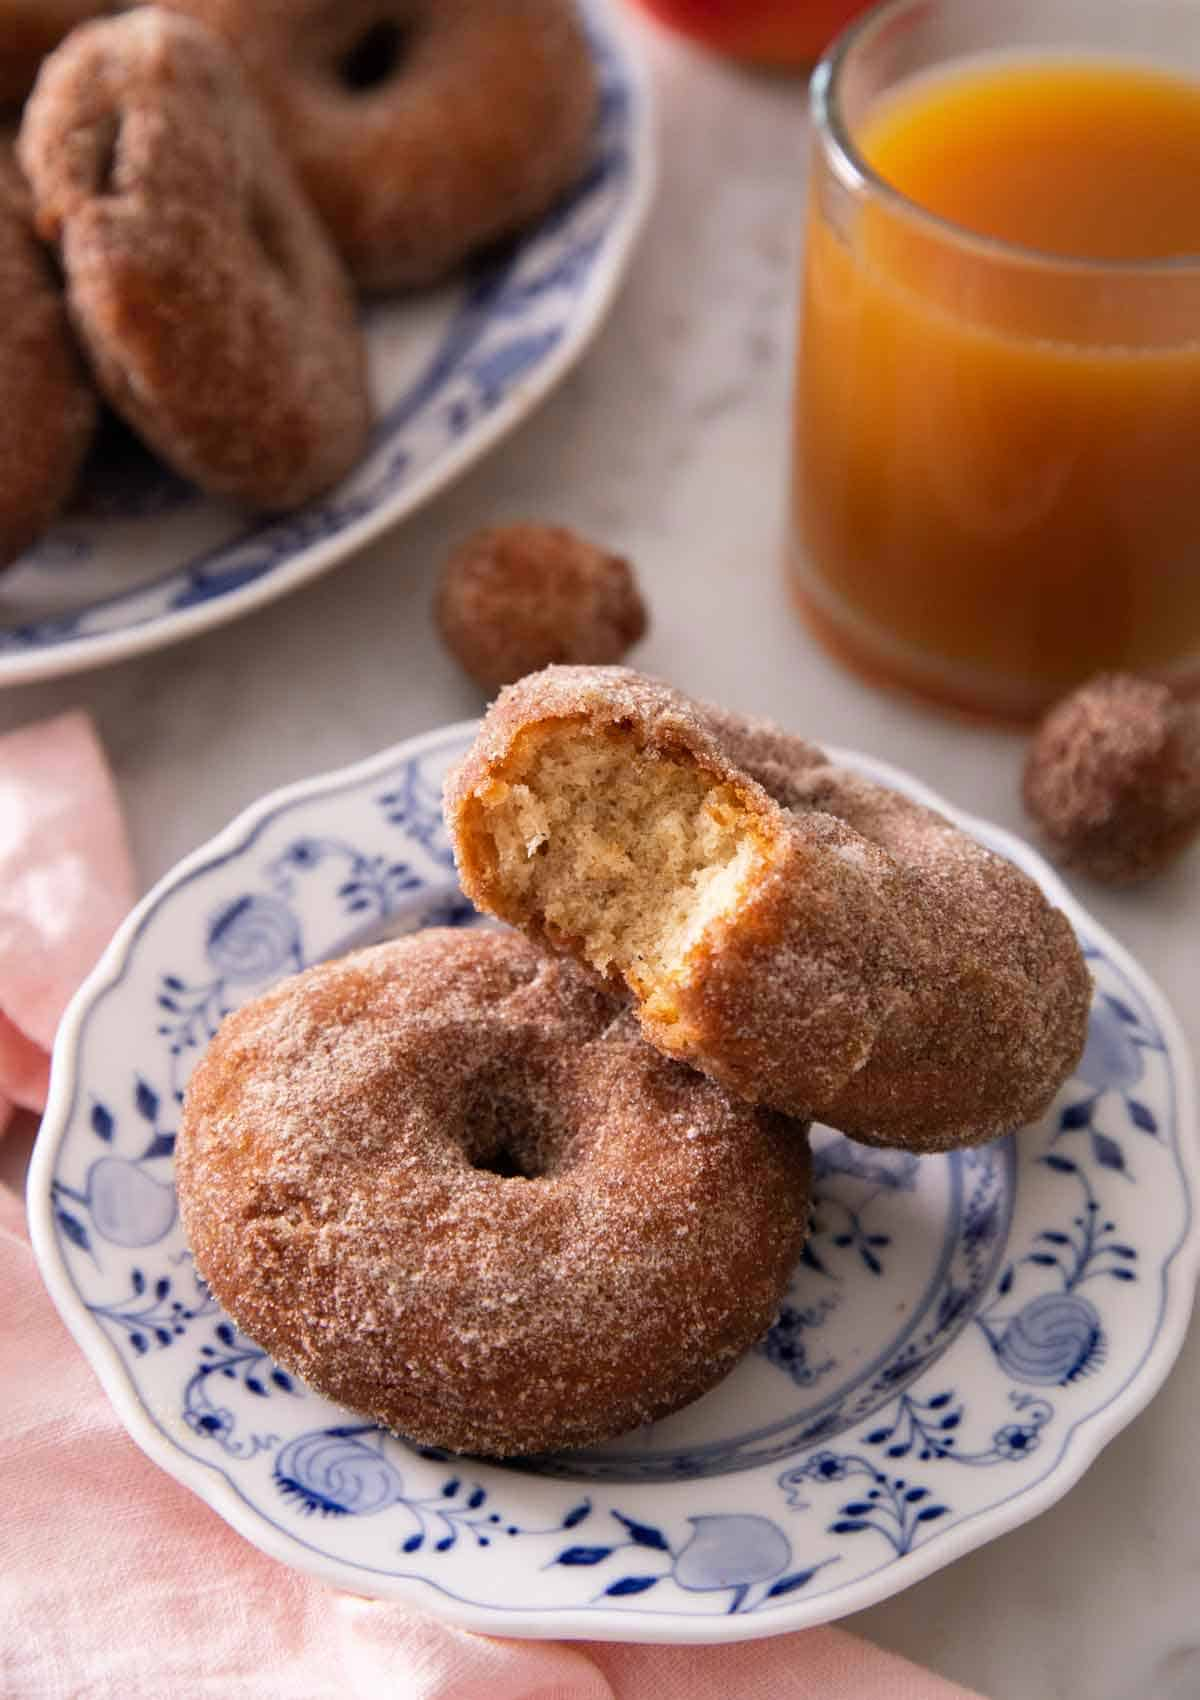 Two apple cider donuts, with one with a bite taken out of it, on a plate in front of a cup of apple cider.